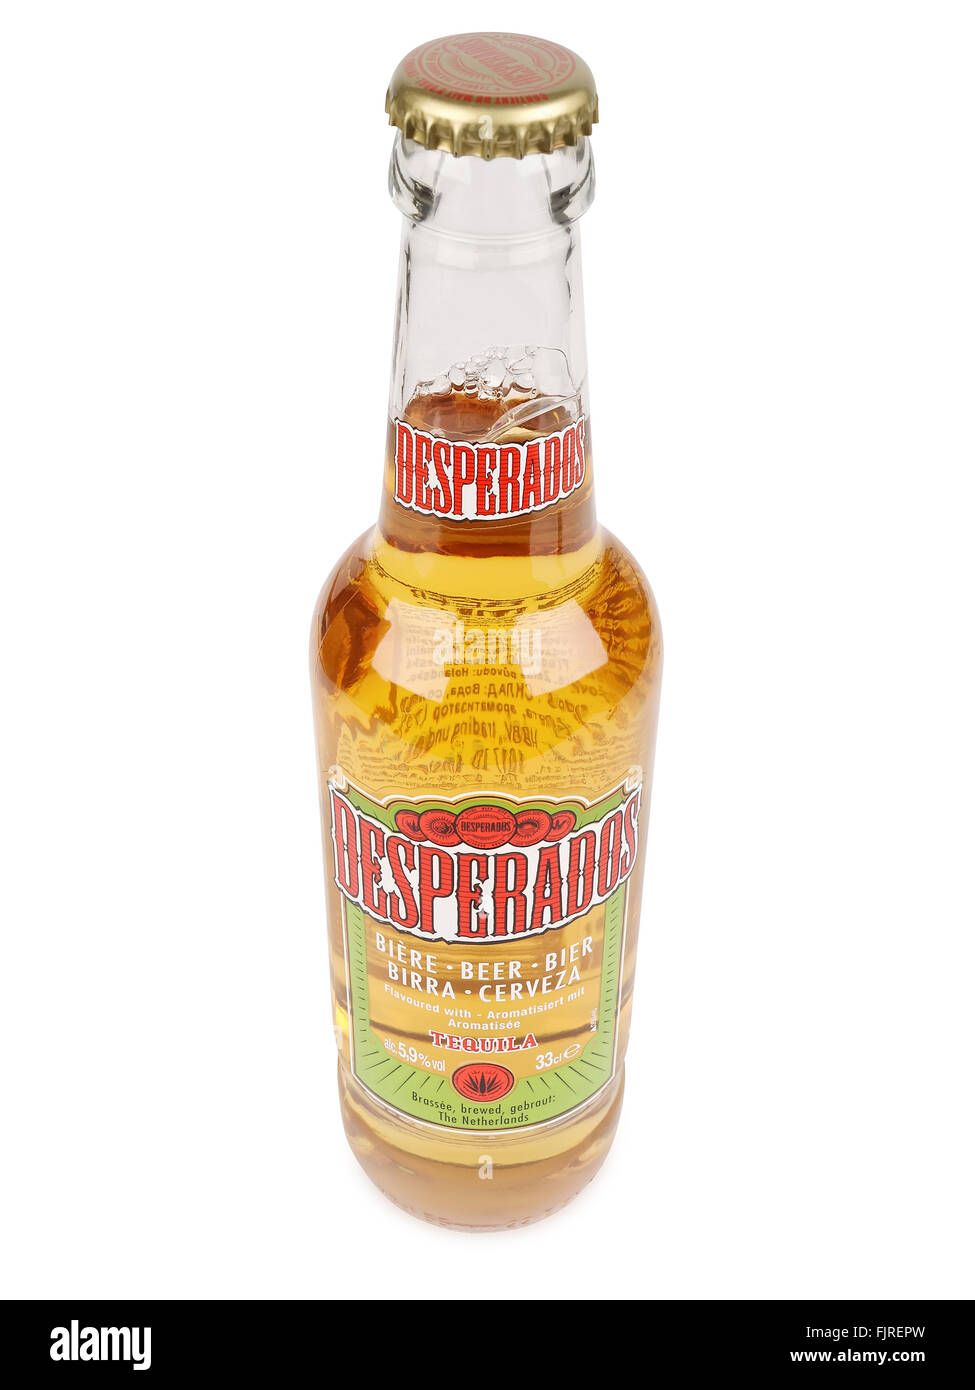 Desperados Lager Flavored With Tequila Is A Popular Beer Produced By Stock Photo Alamy